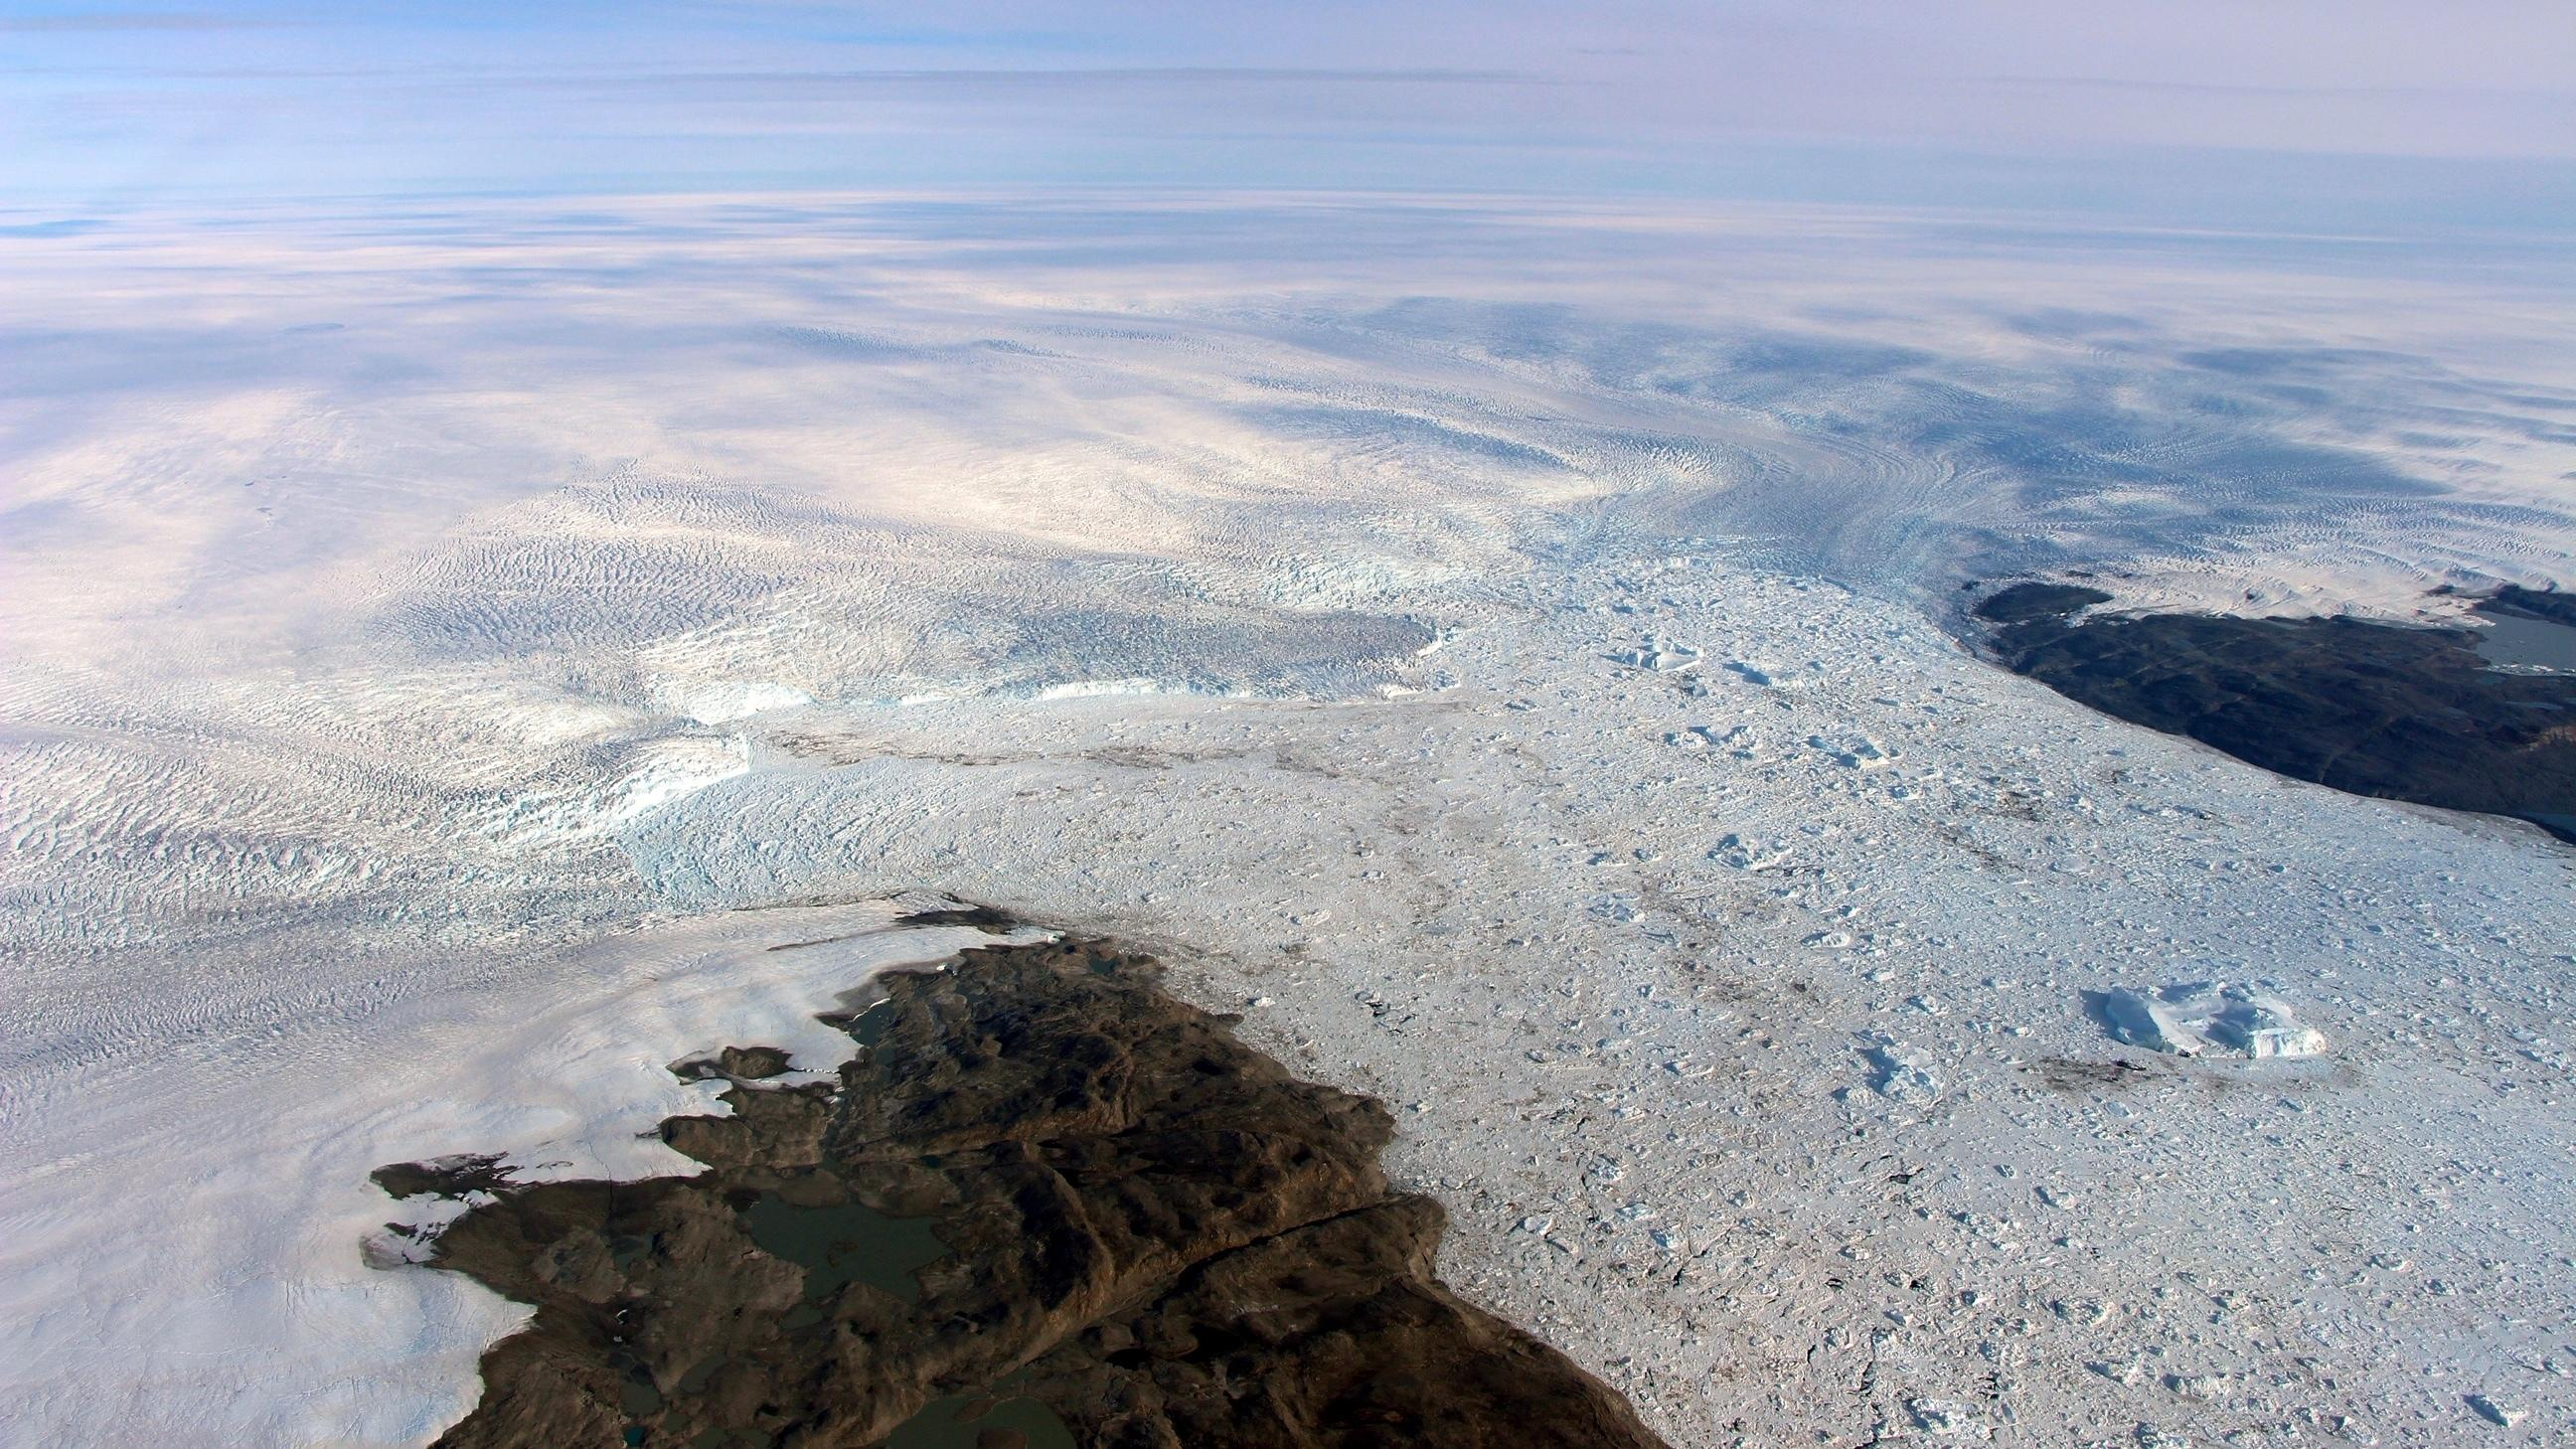 Shrinking Greenland glacier surprises climate scientists with growth